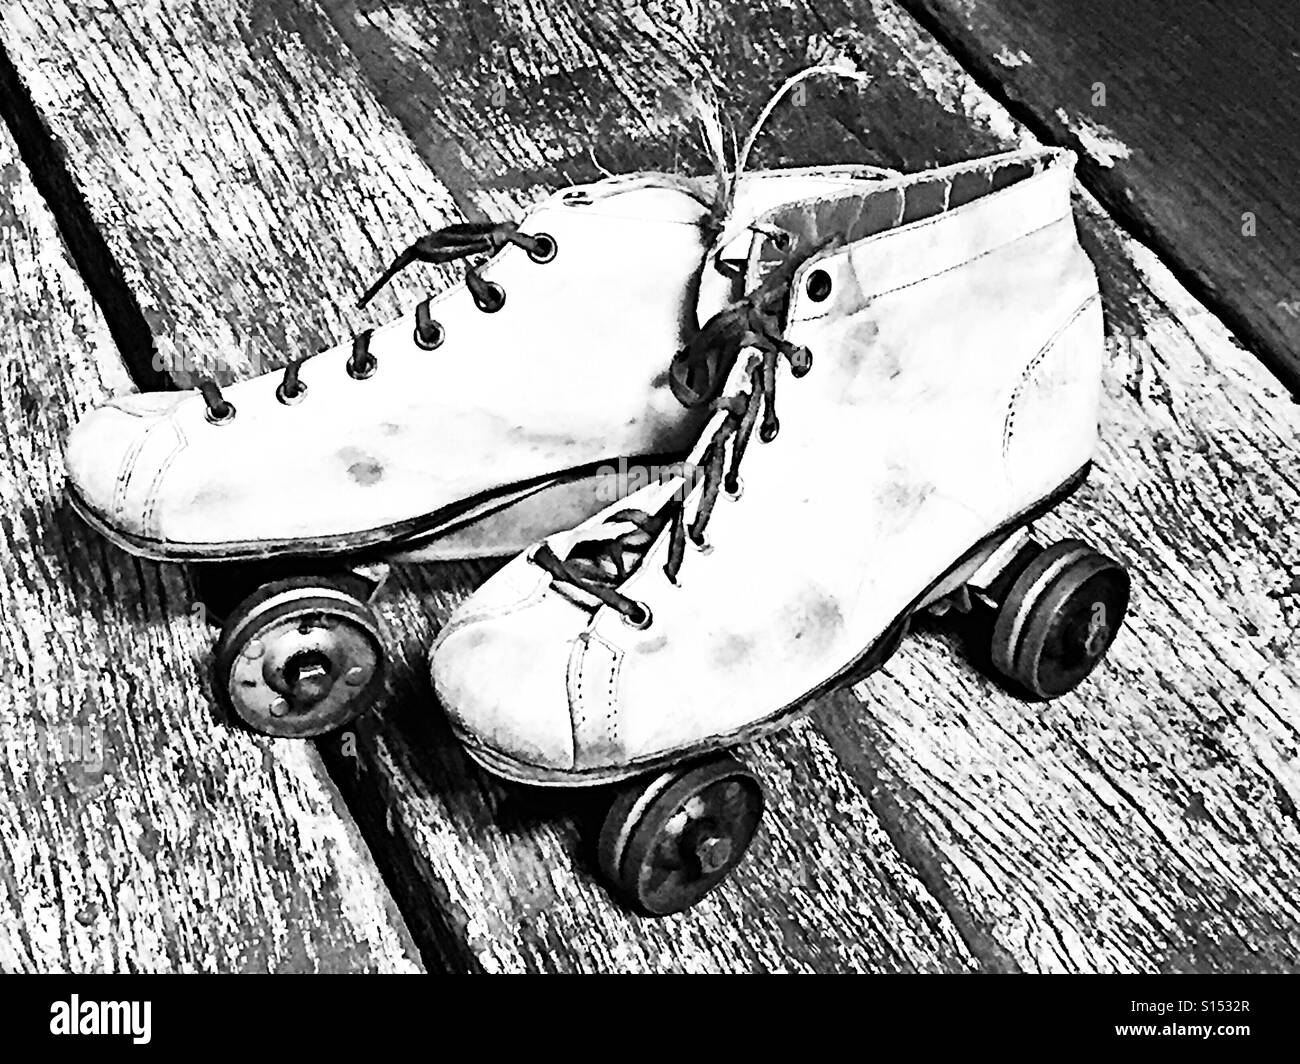 2 pair sidewalk skates from the fifties